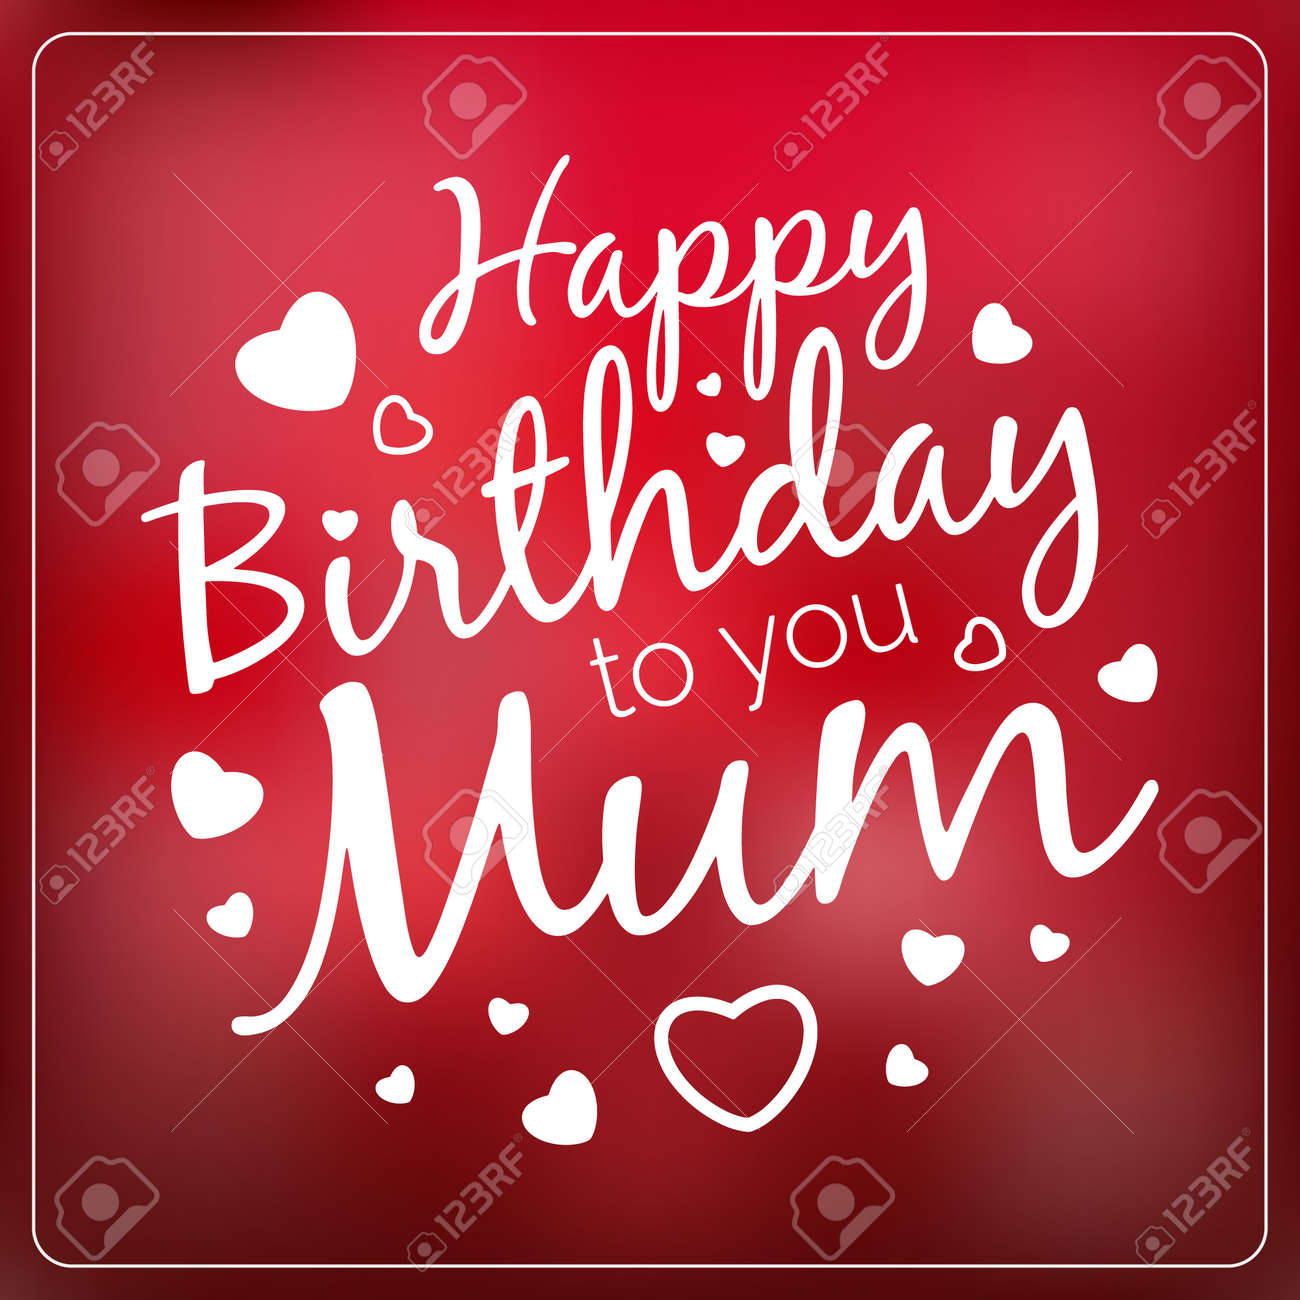 Typography vector happy birthday to you mum card template. Vintage Happy Birthday Typographical Background for your mother with love. Romantic vector banner in red colors. - 45117512